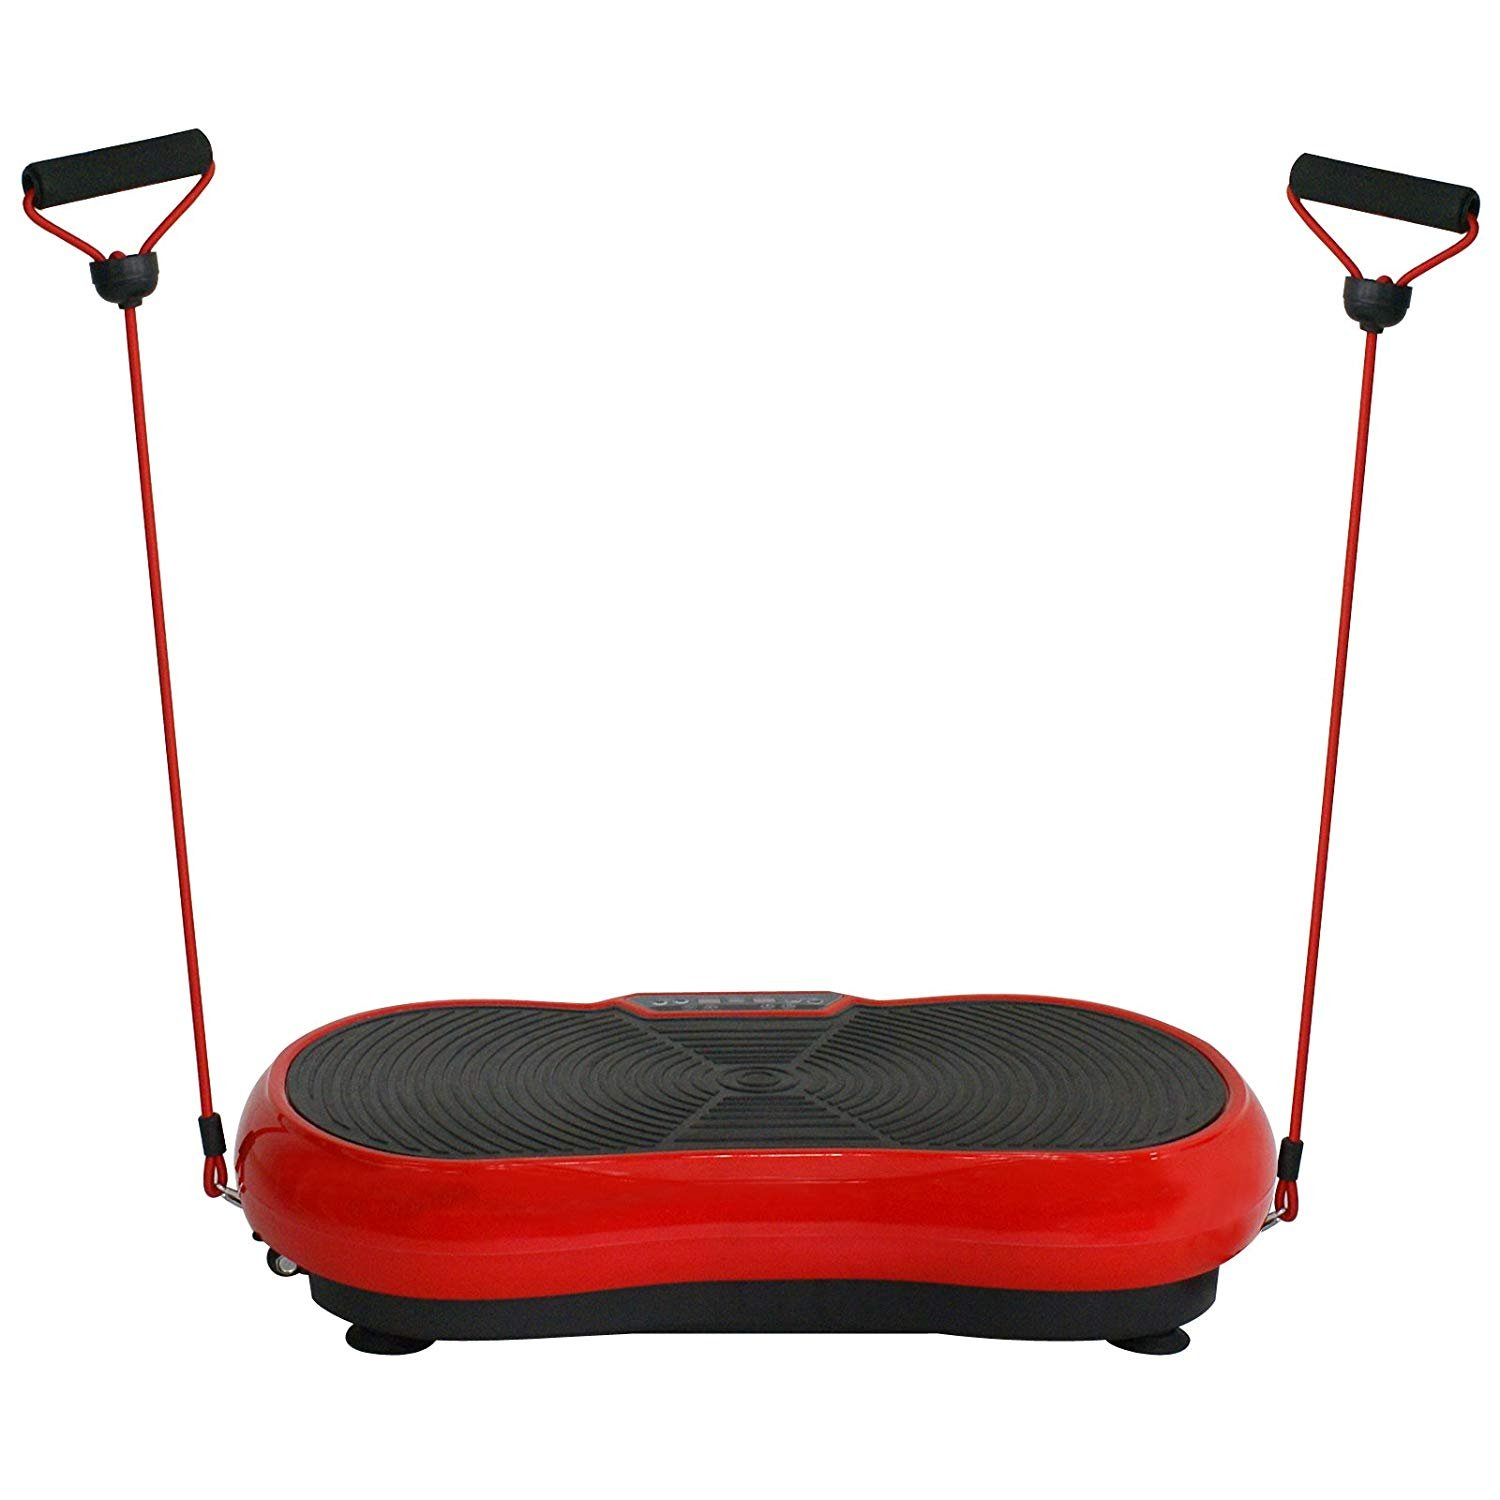 HomGarden Crazy Fitness Vibration Fit Machine Plate Platform Massager - Whole Full Body Shape Exercise Machine Workout Trainer Slim w/Bluetooth, Red by HomGarden (Image #3)